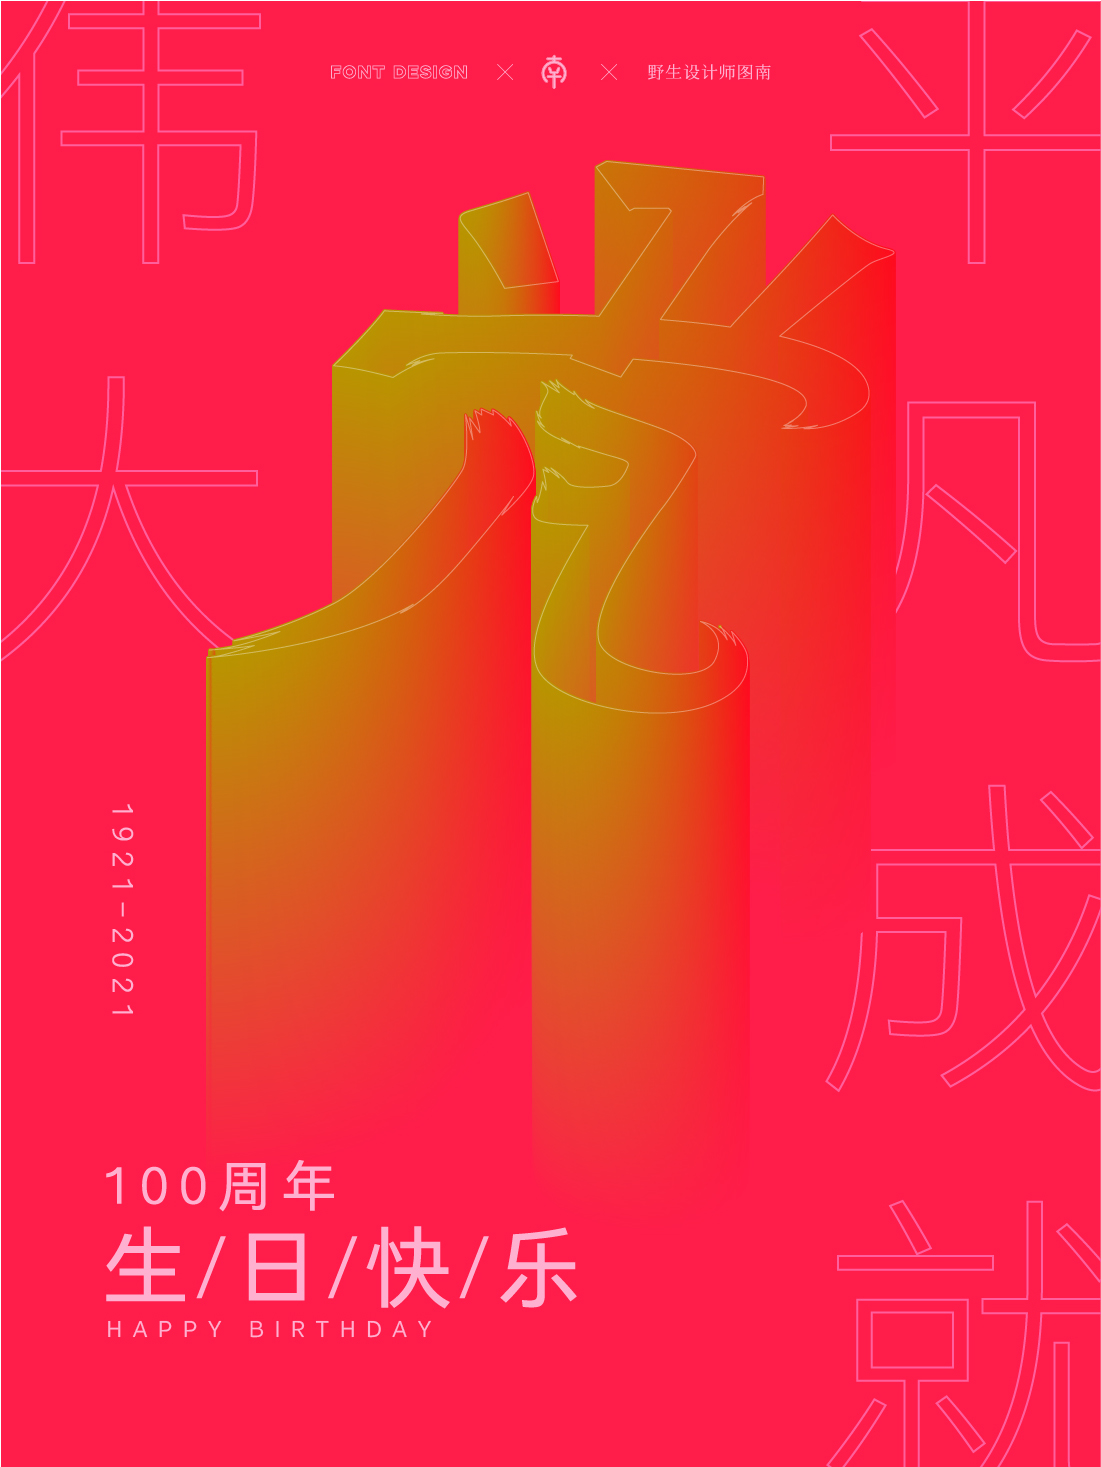 25P Collection of the latest Chinese font design schemes in 2021 #.368